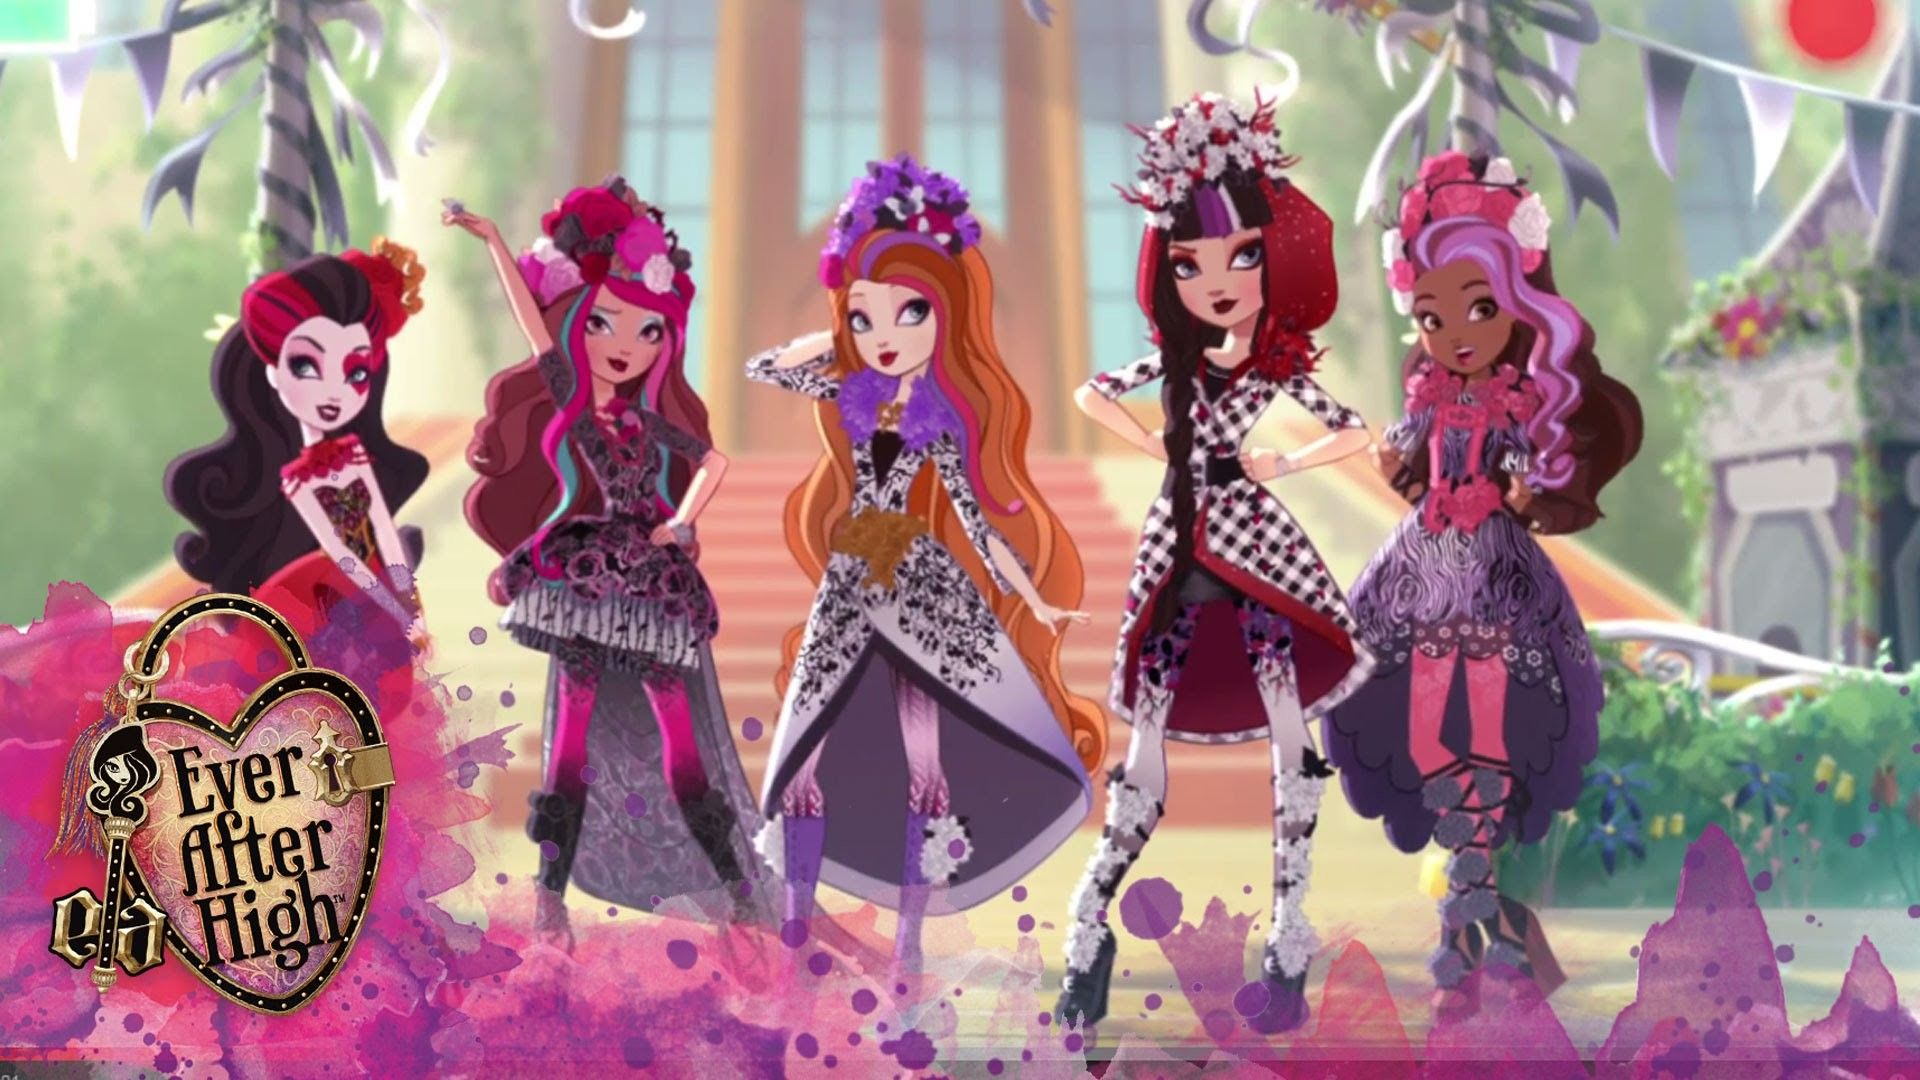 Ever After High Wallpapers - Top Free Ever After High ...